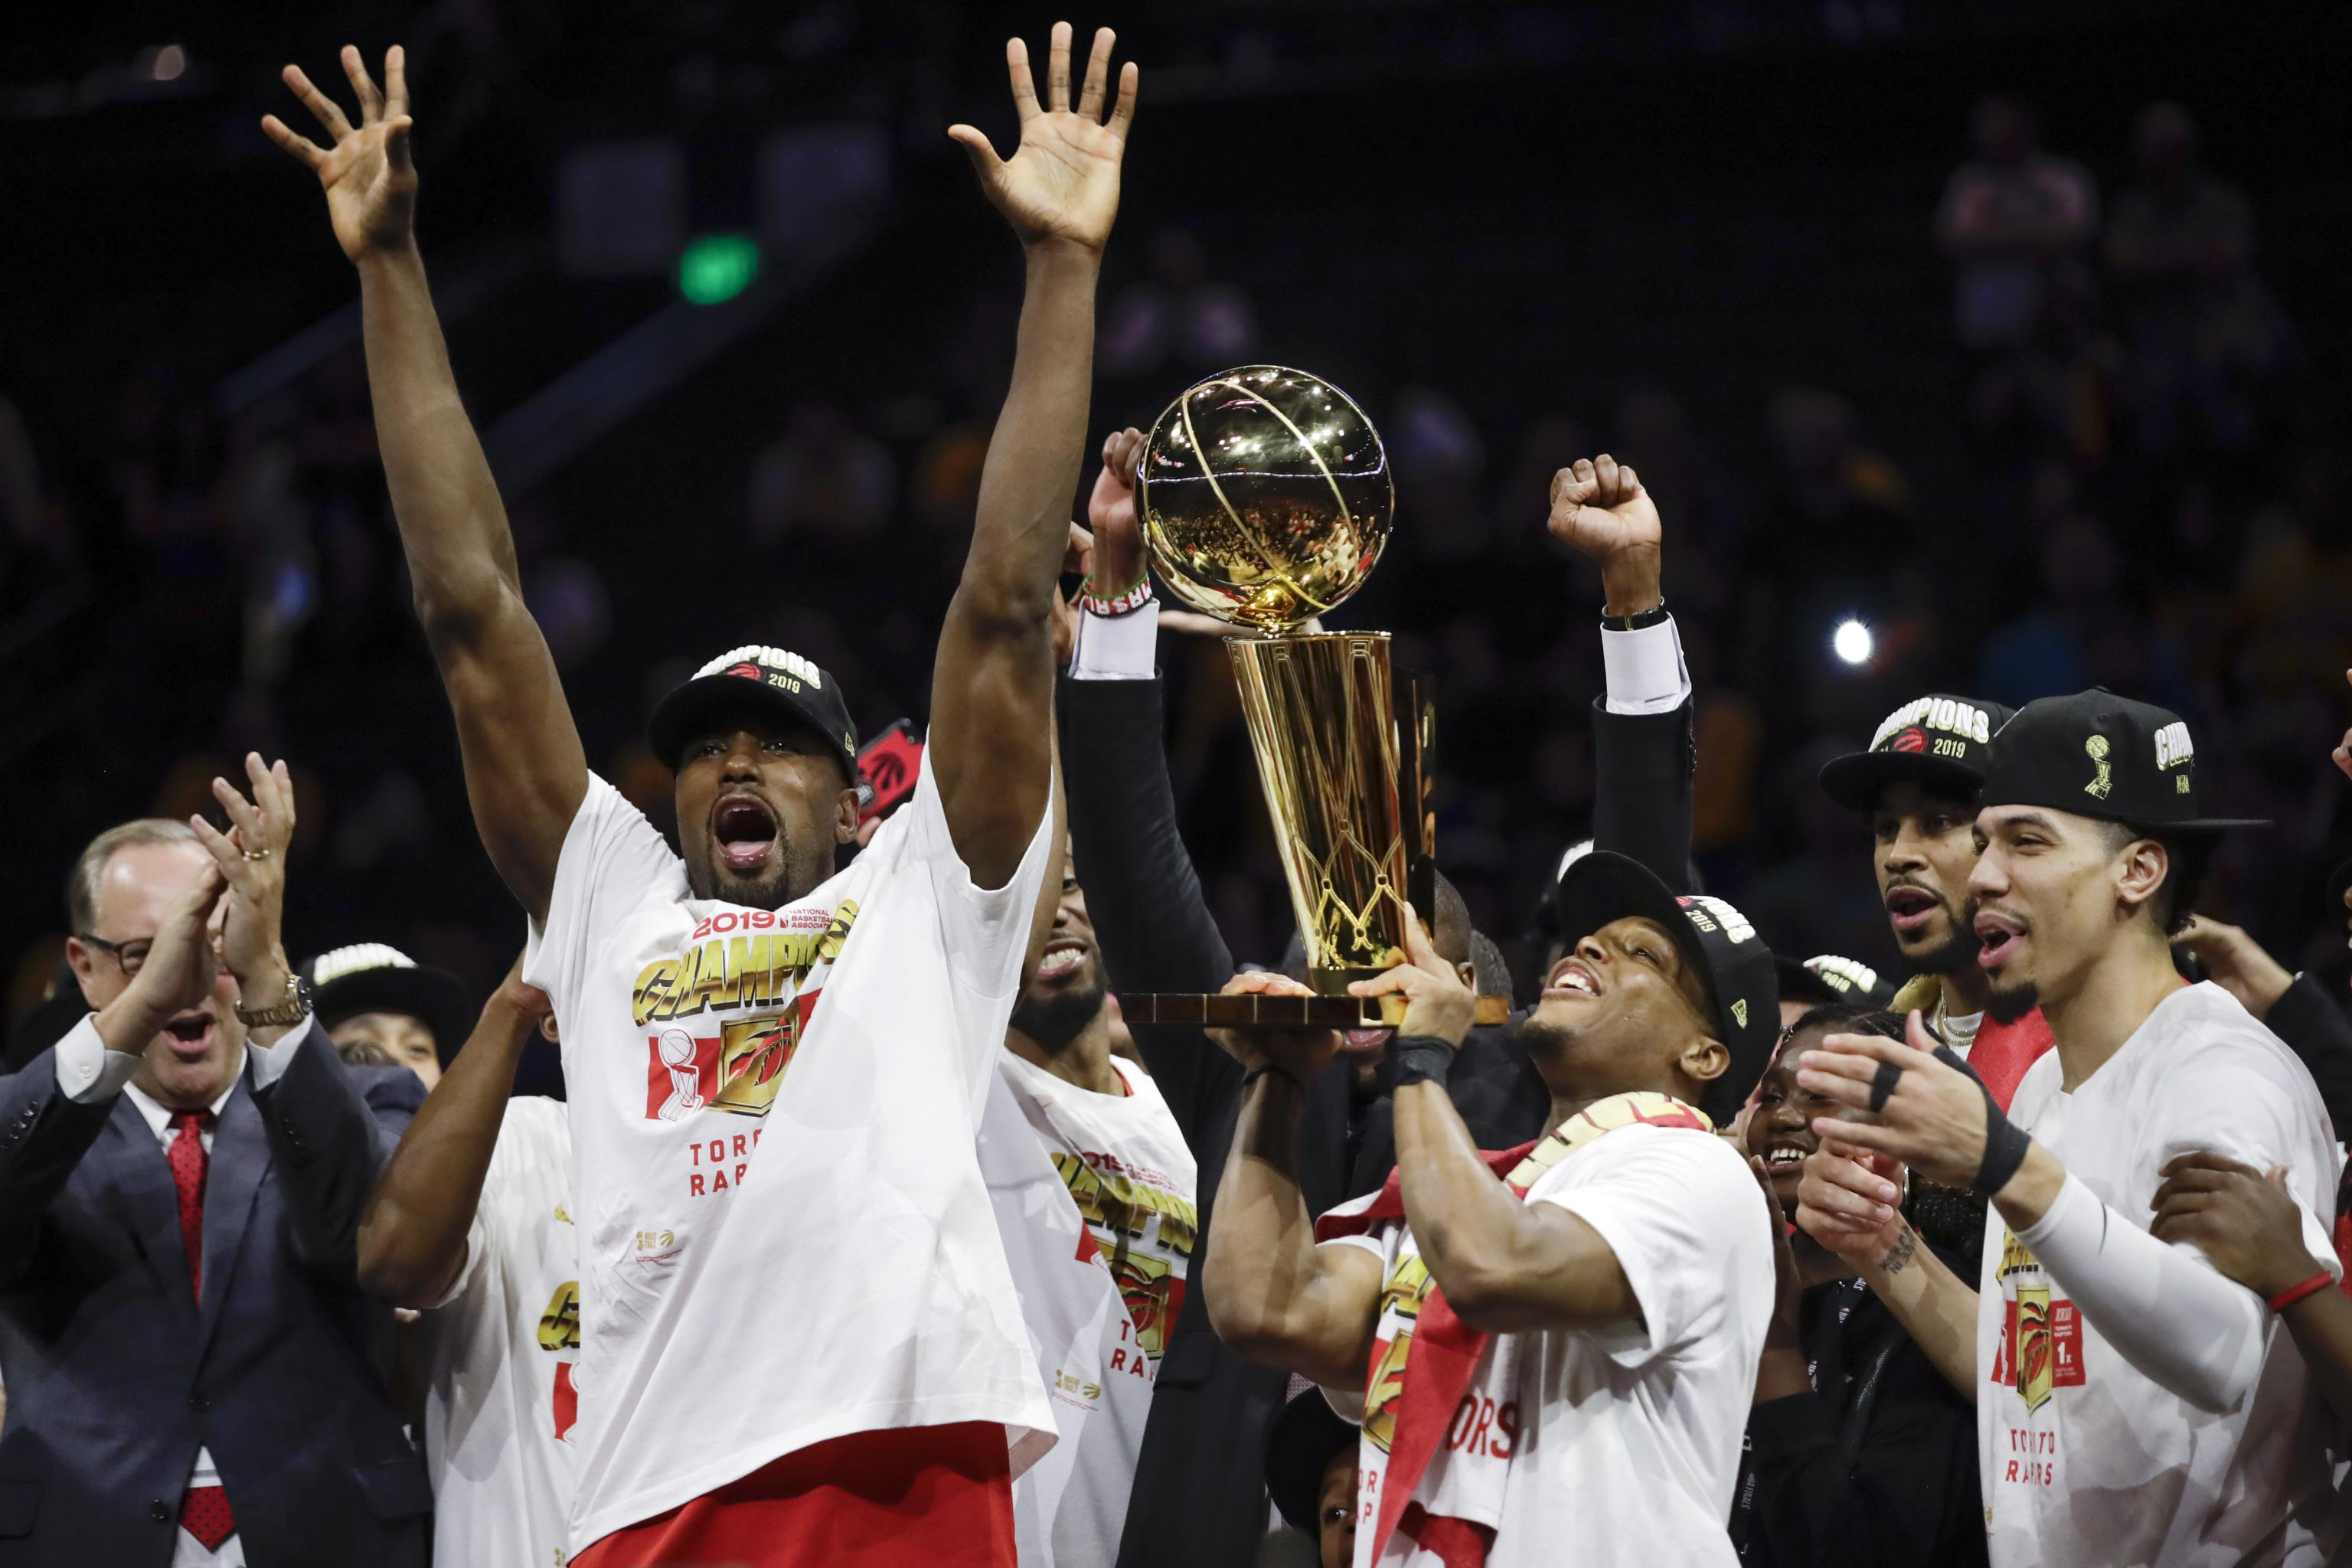 No Asterisks Here Behind The Scenes Of Toronto Raptors Championship Celebration Bleacher Report Latest News Videos And Highlights